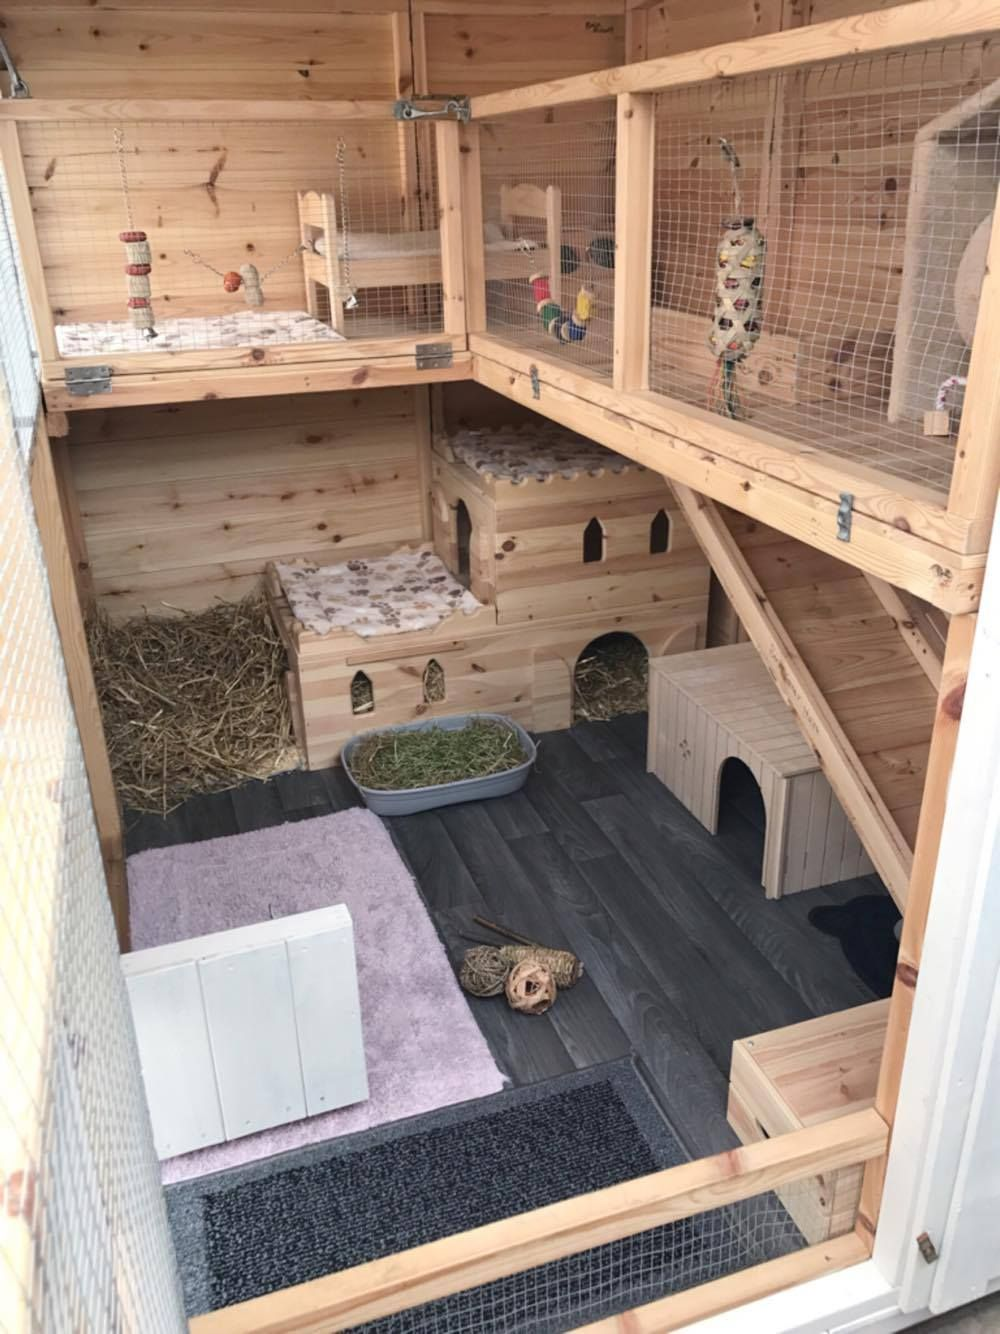 A Fantastic Set Up Here For Bunnies To Have So Much Fun In